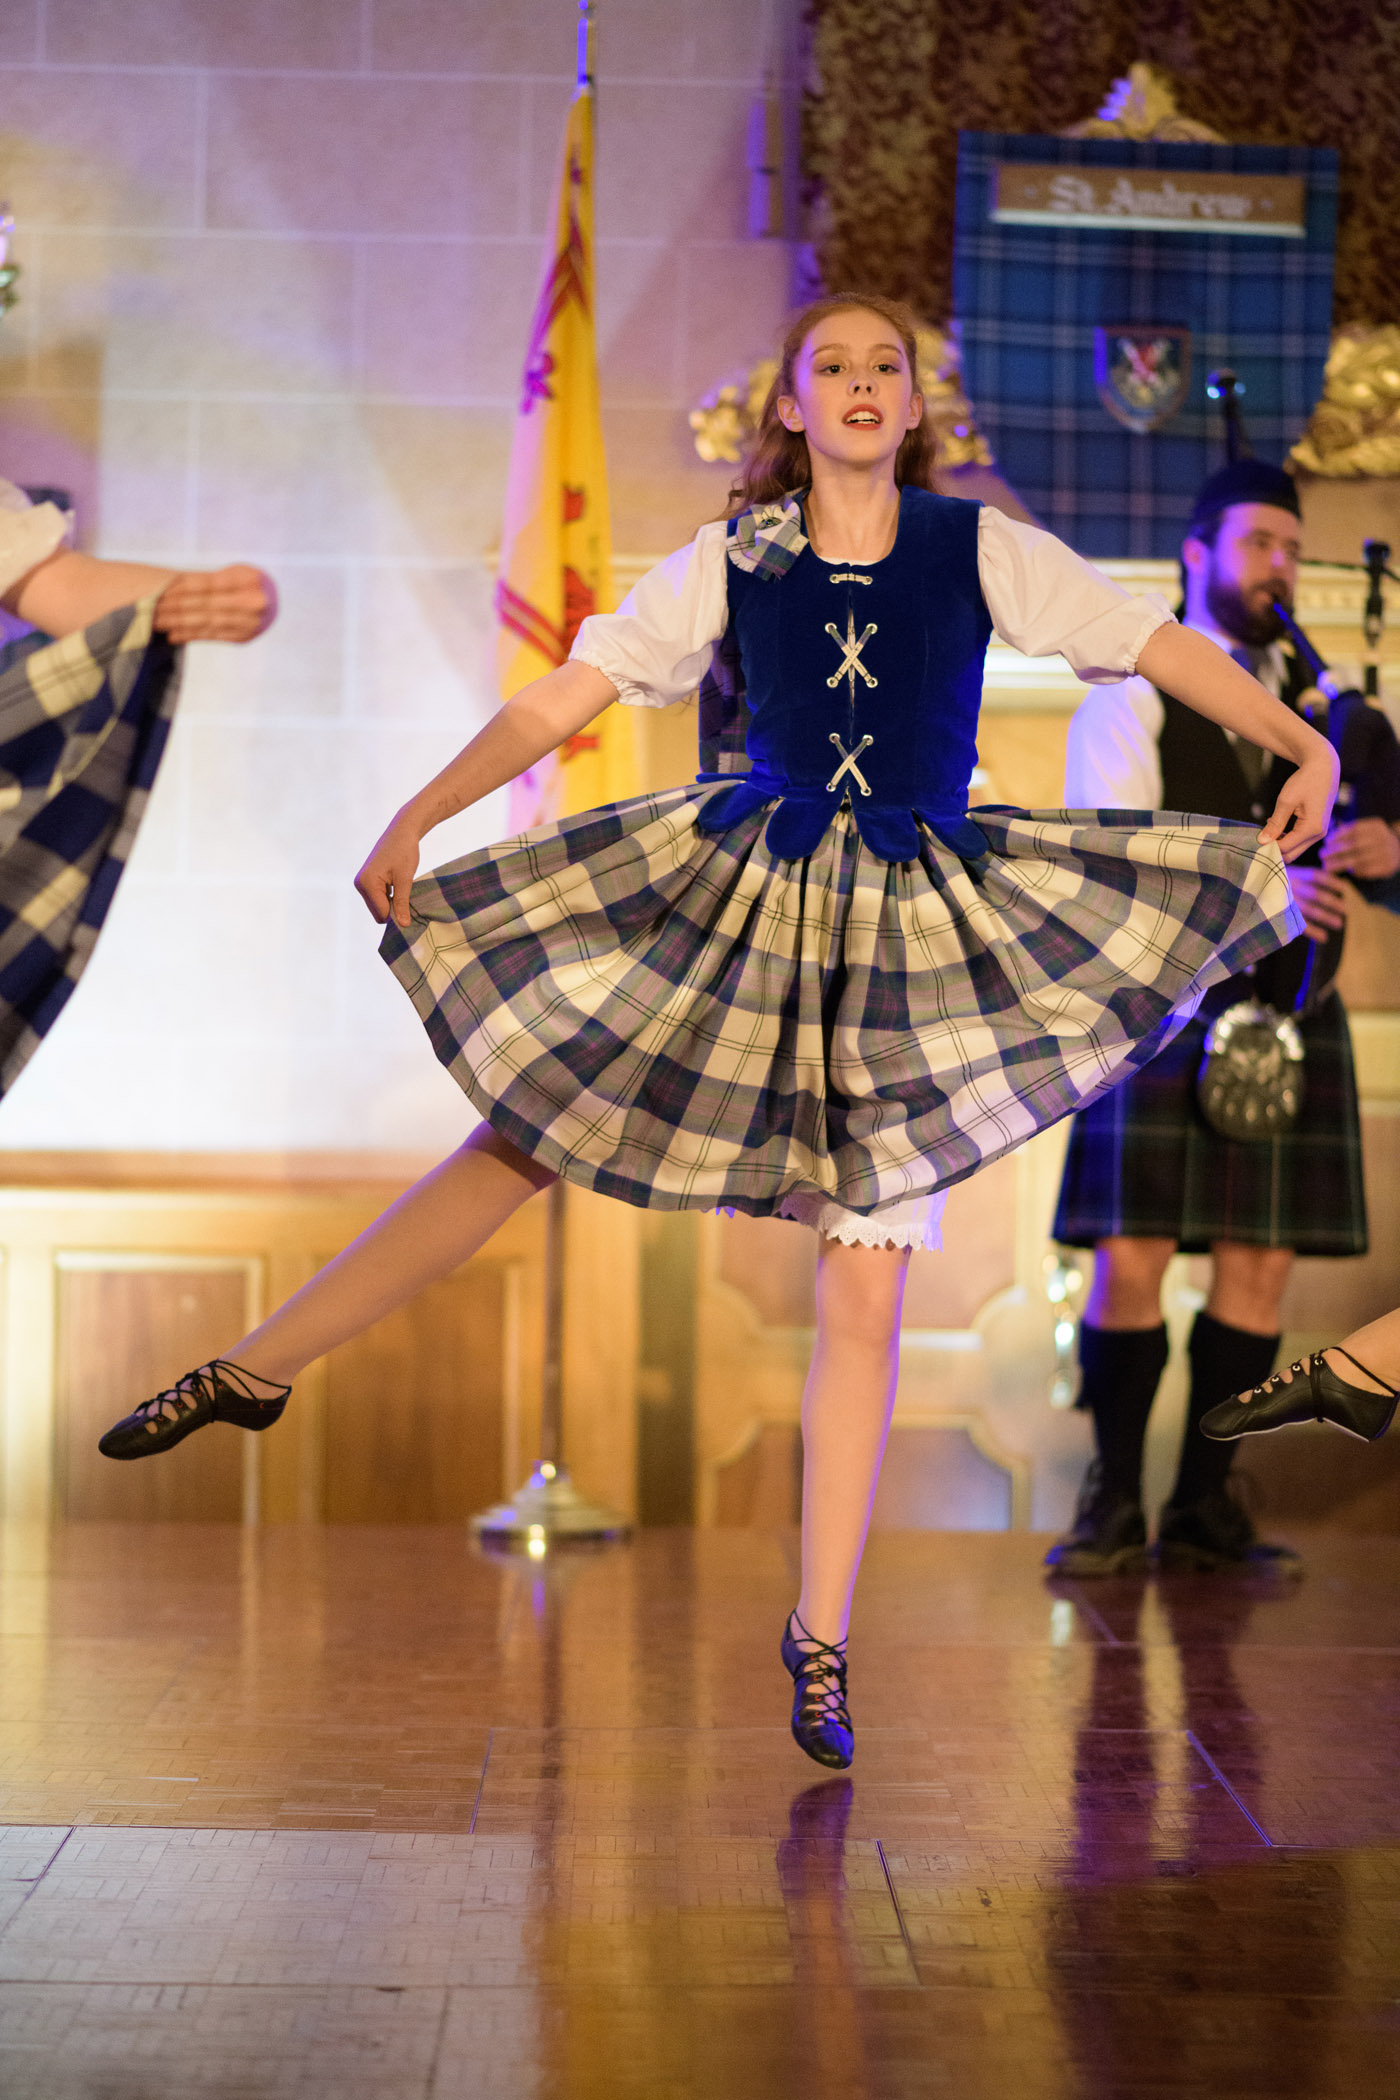 st-andrews-robert-lowdon dancer _128.jpg